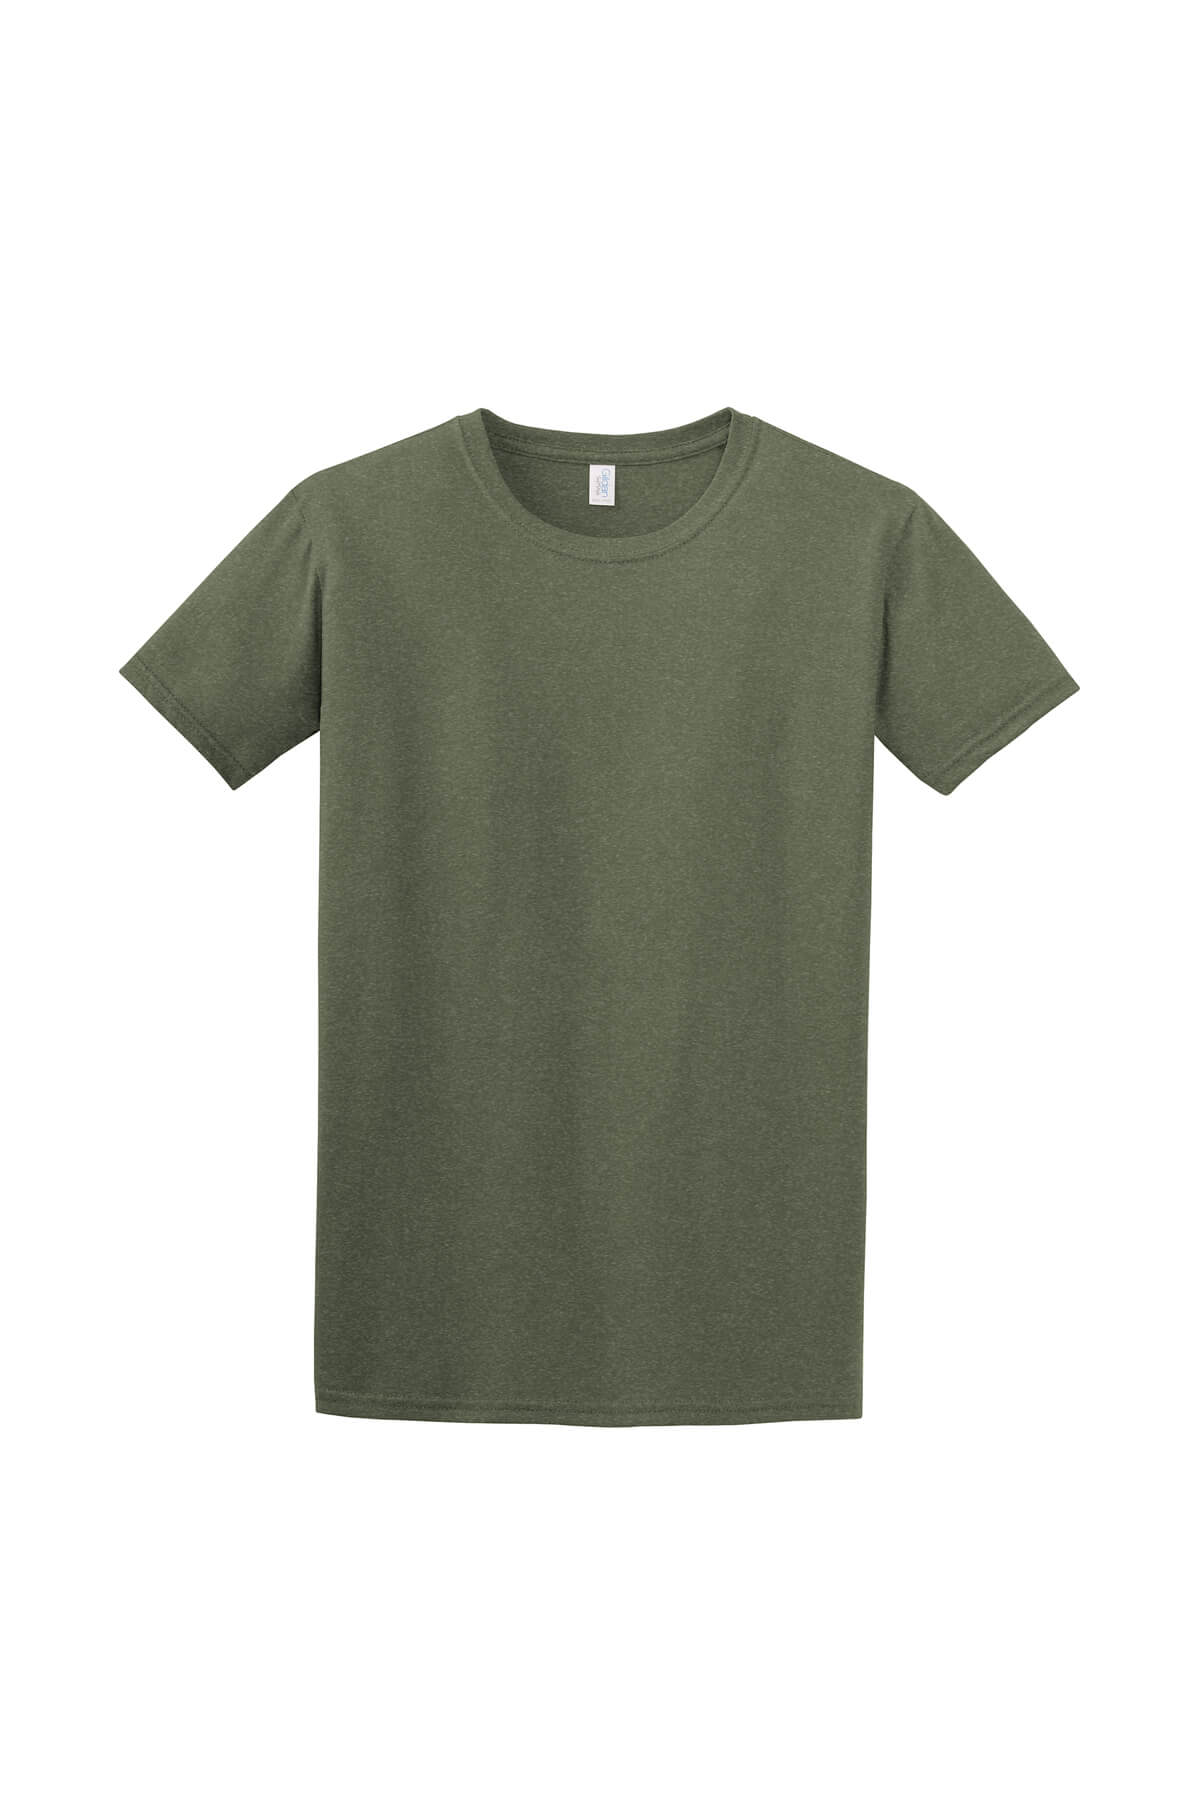 Military Green T-Shirt Front